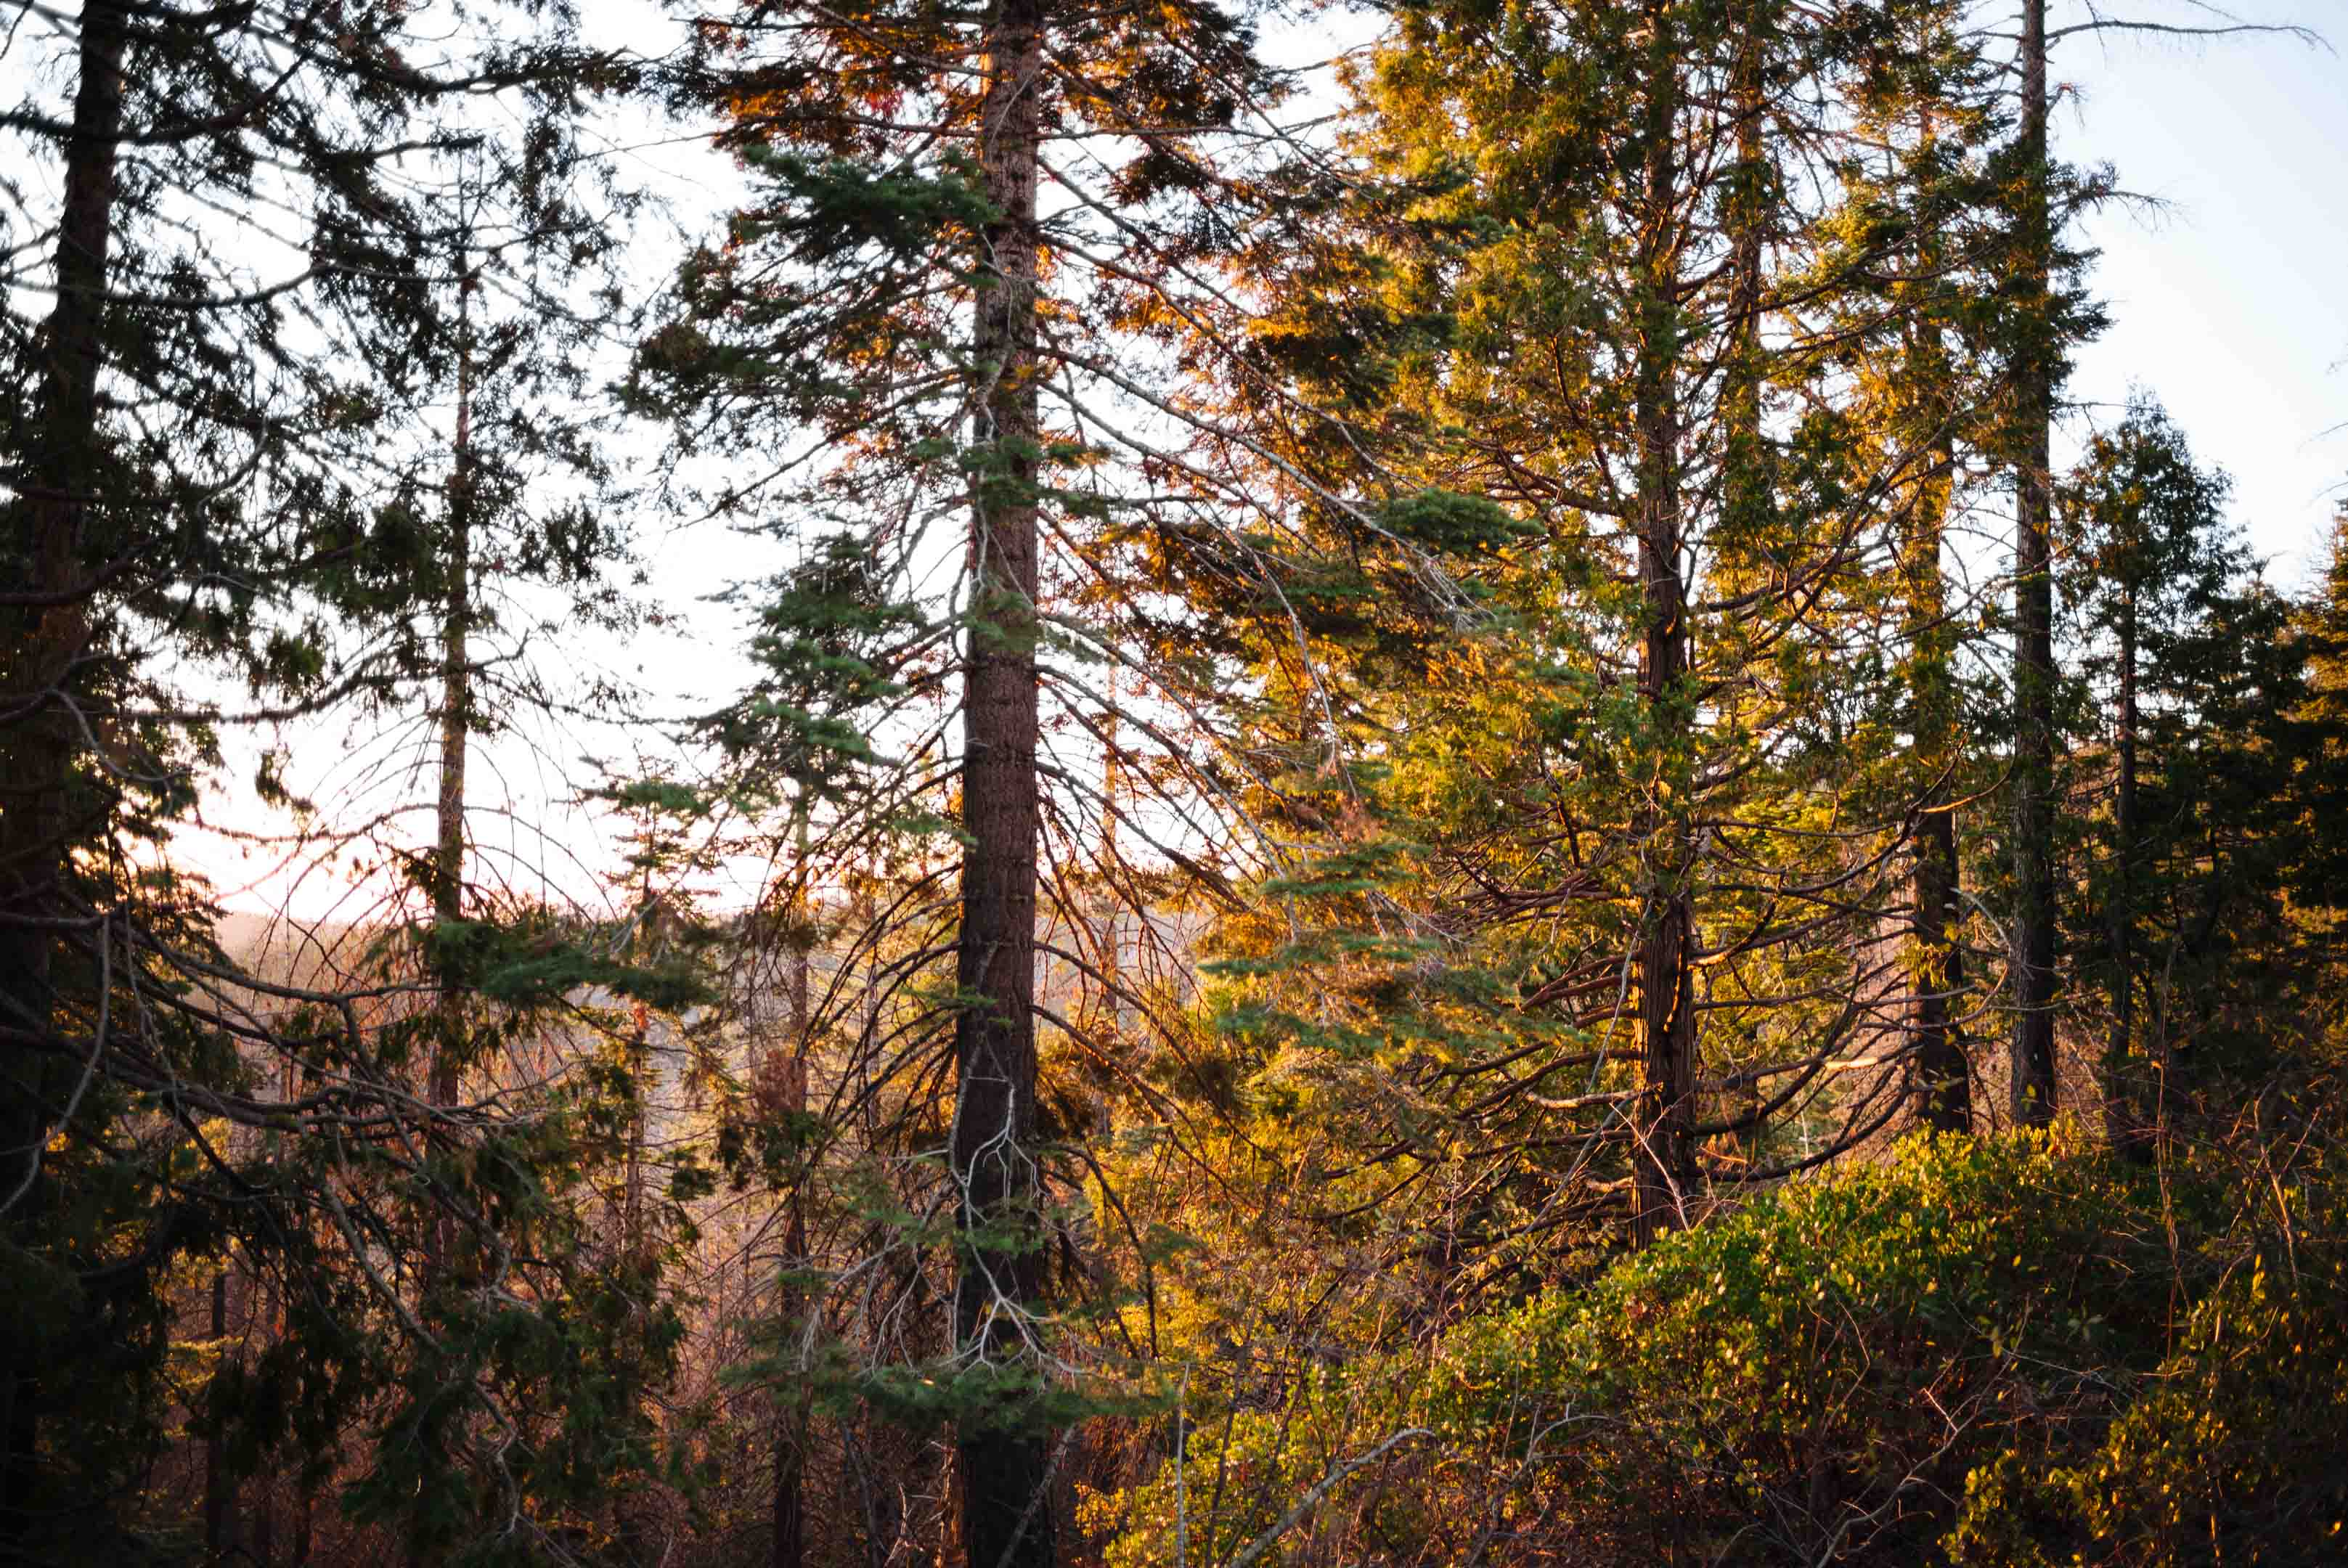 Watch the sunset through the trees in Yosemite National Park in Tuolumne County California